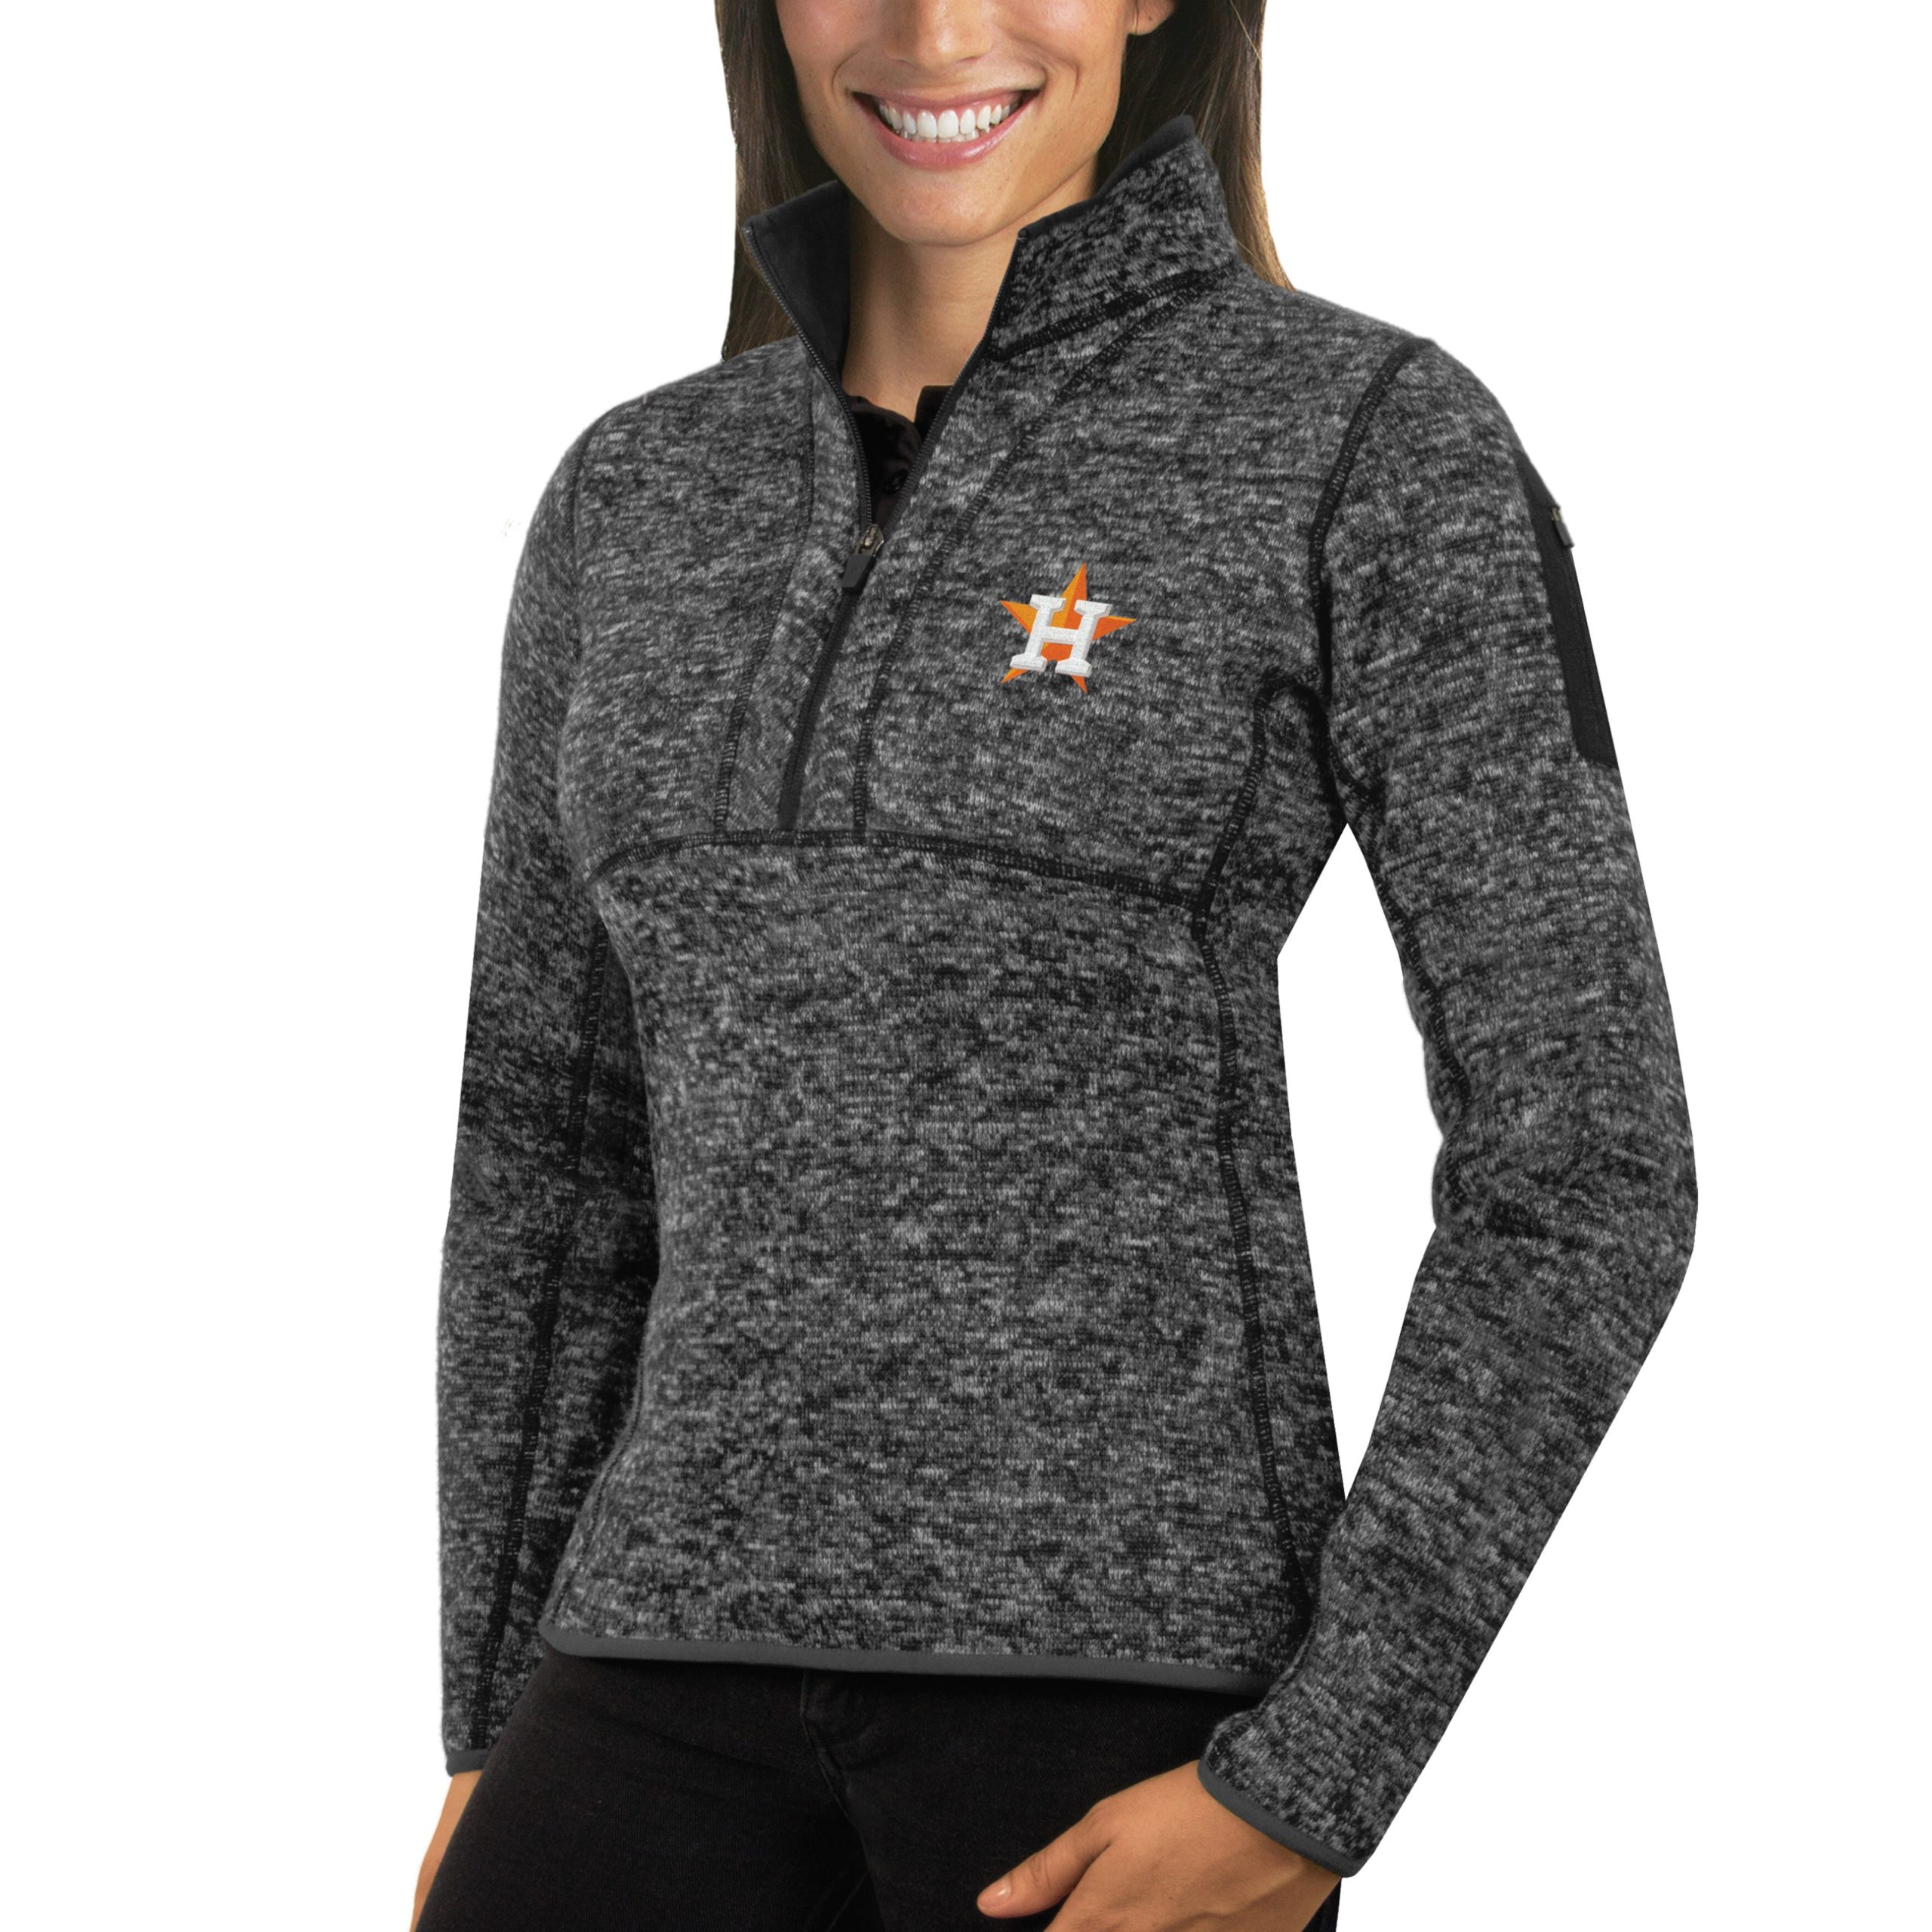 Houston Astros Antigua Women's Fortune Half-Zip Pullover Sweater - Heathered Charcoal